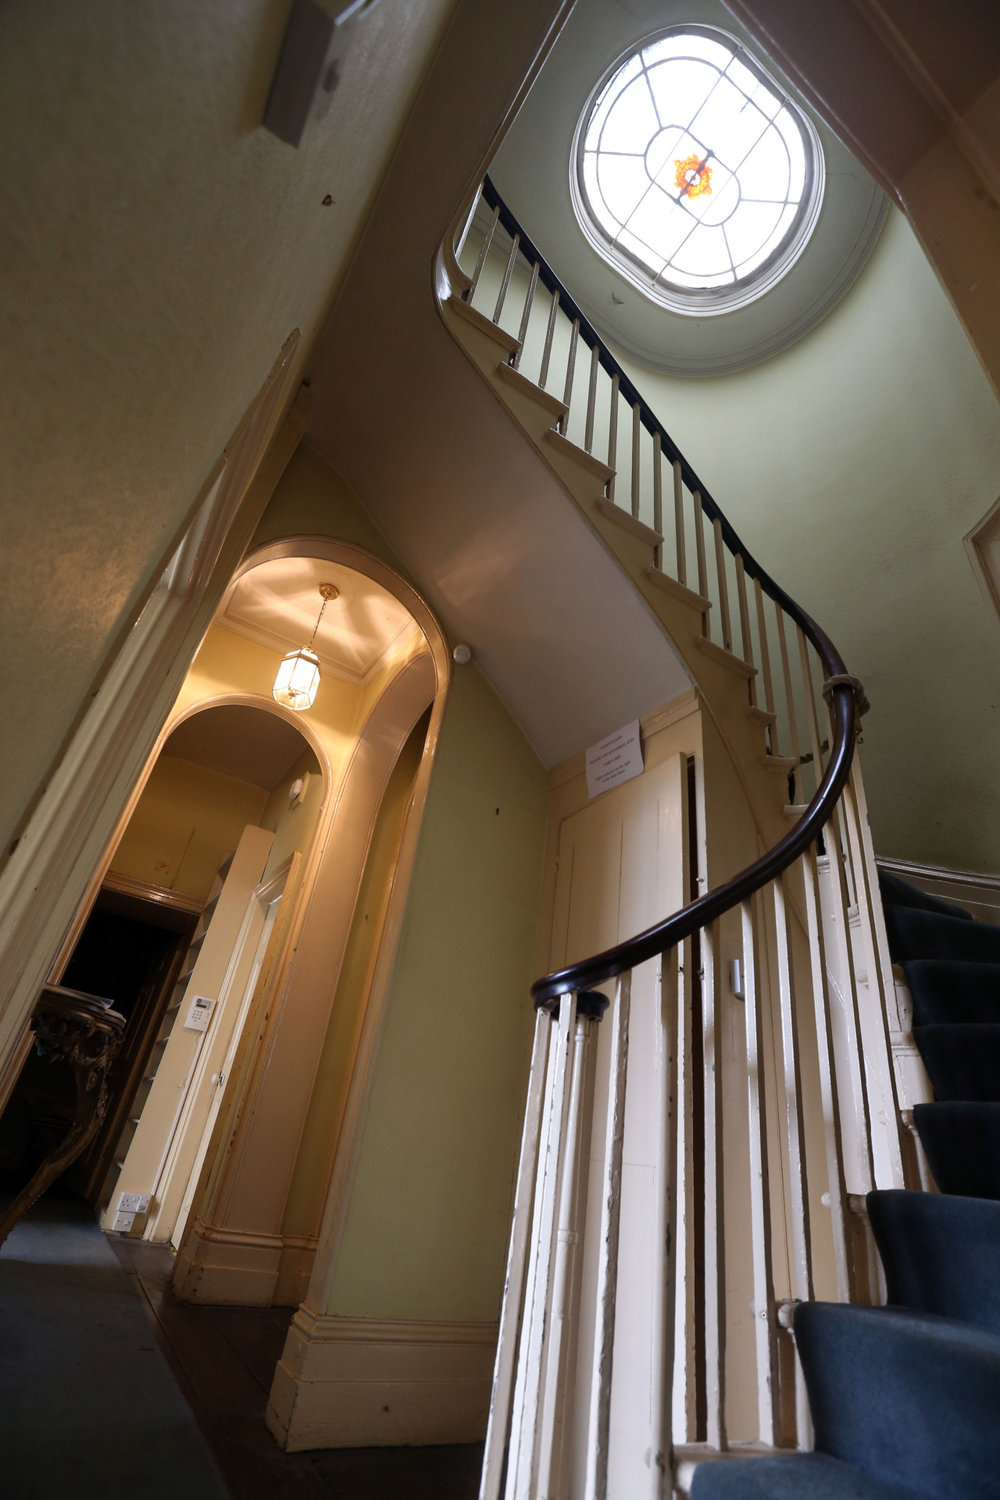 Staircase at Turner's House, Twickenham. Image courtesy turnerintwickenham.org